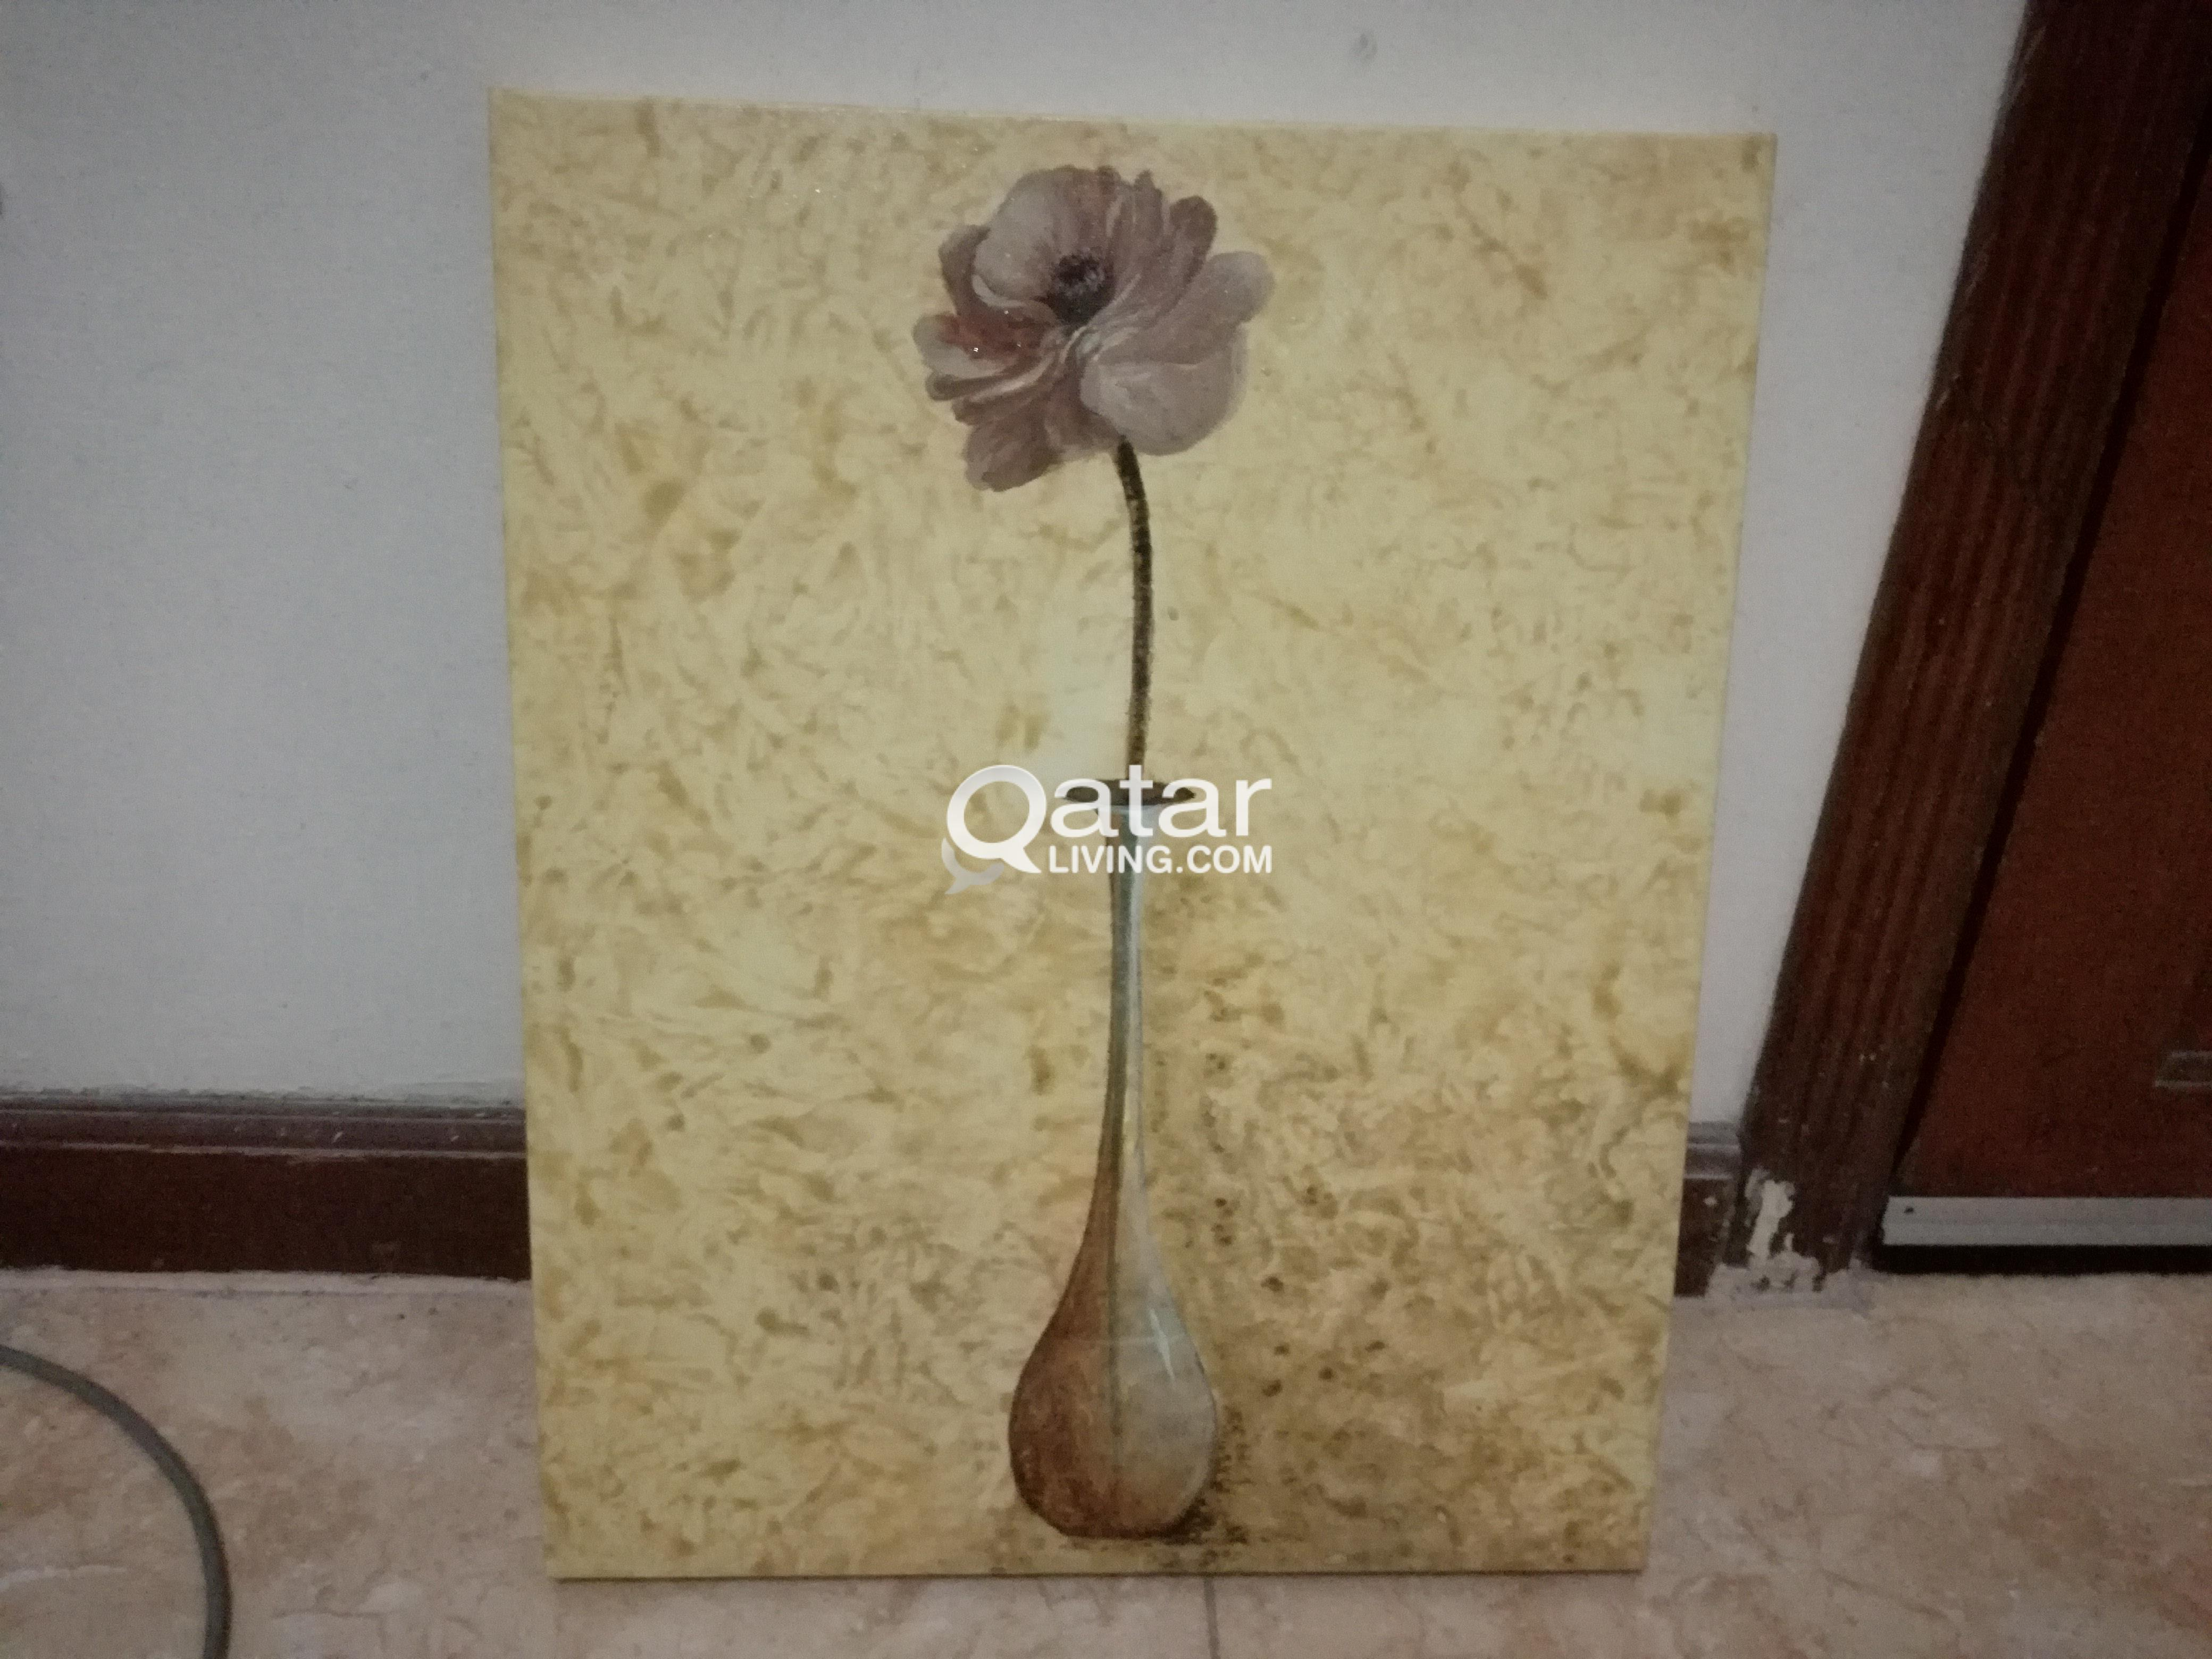 (Reduced prices)Vases, Wall Pictures, Dish rack